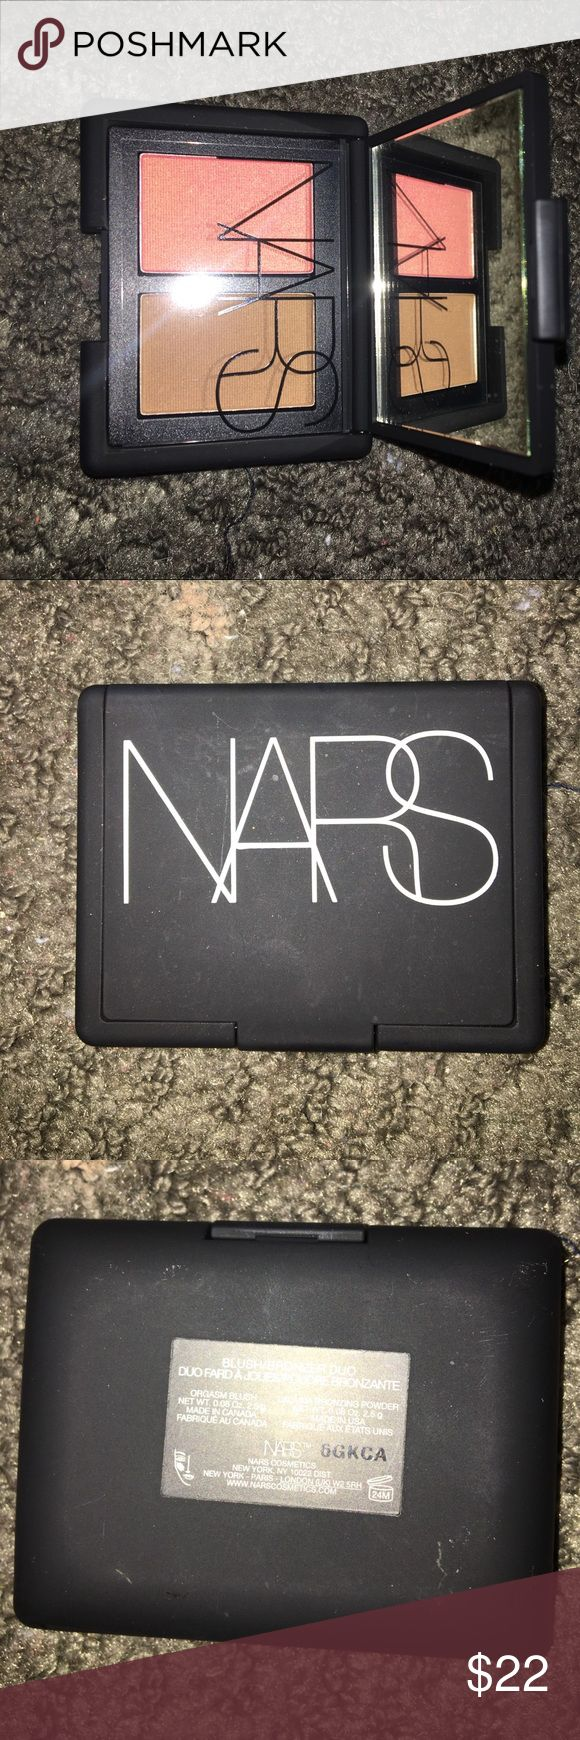 NARS blush bronzer duo travel sized NARS blush bronzer duo in orgasm and laguna. Completely new, but without box. Bundle for better deals. NARS Makeup Blush